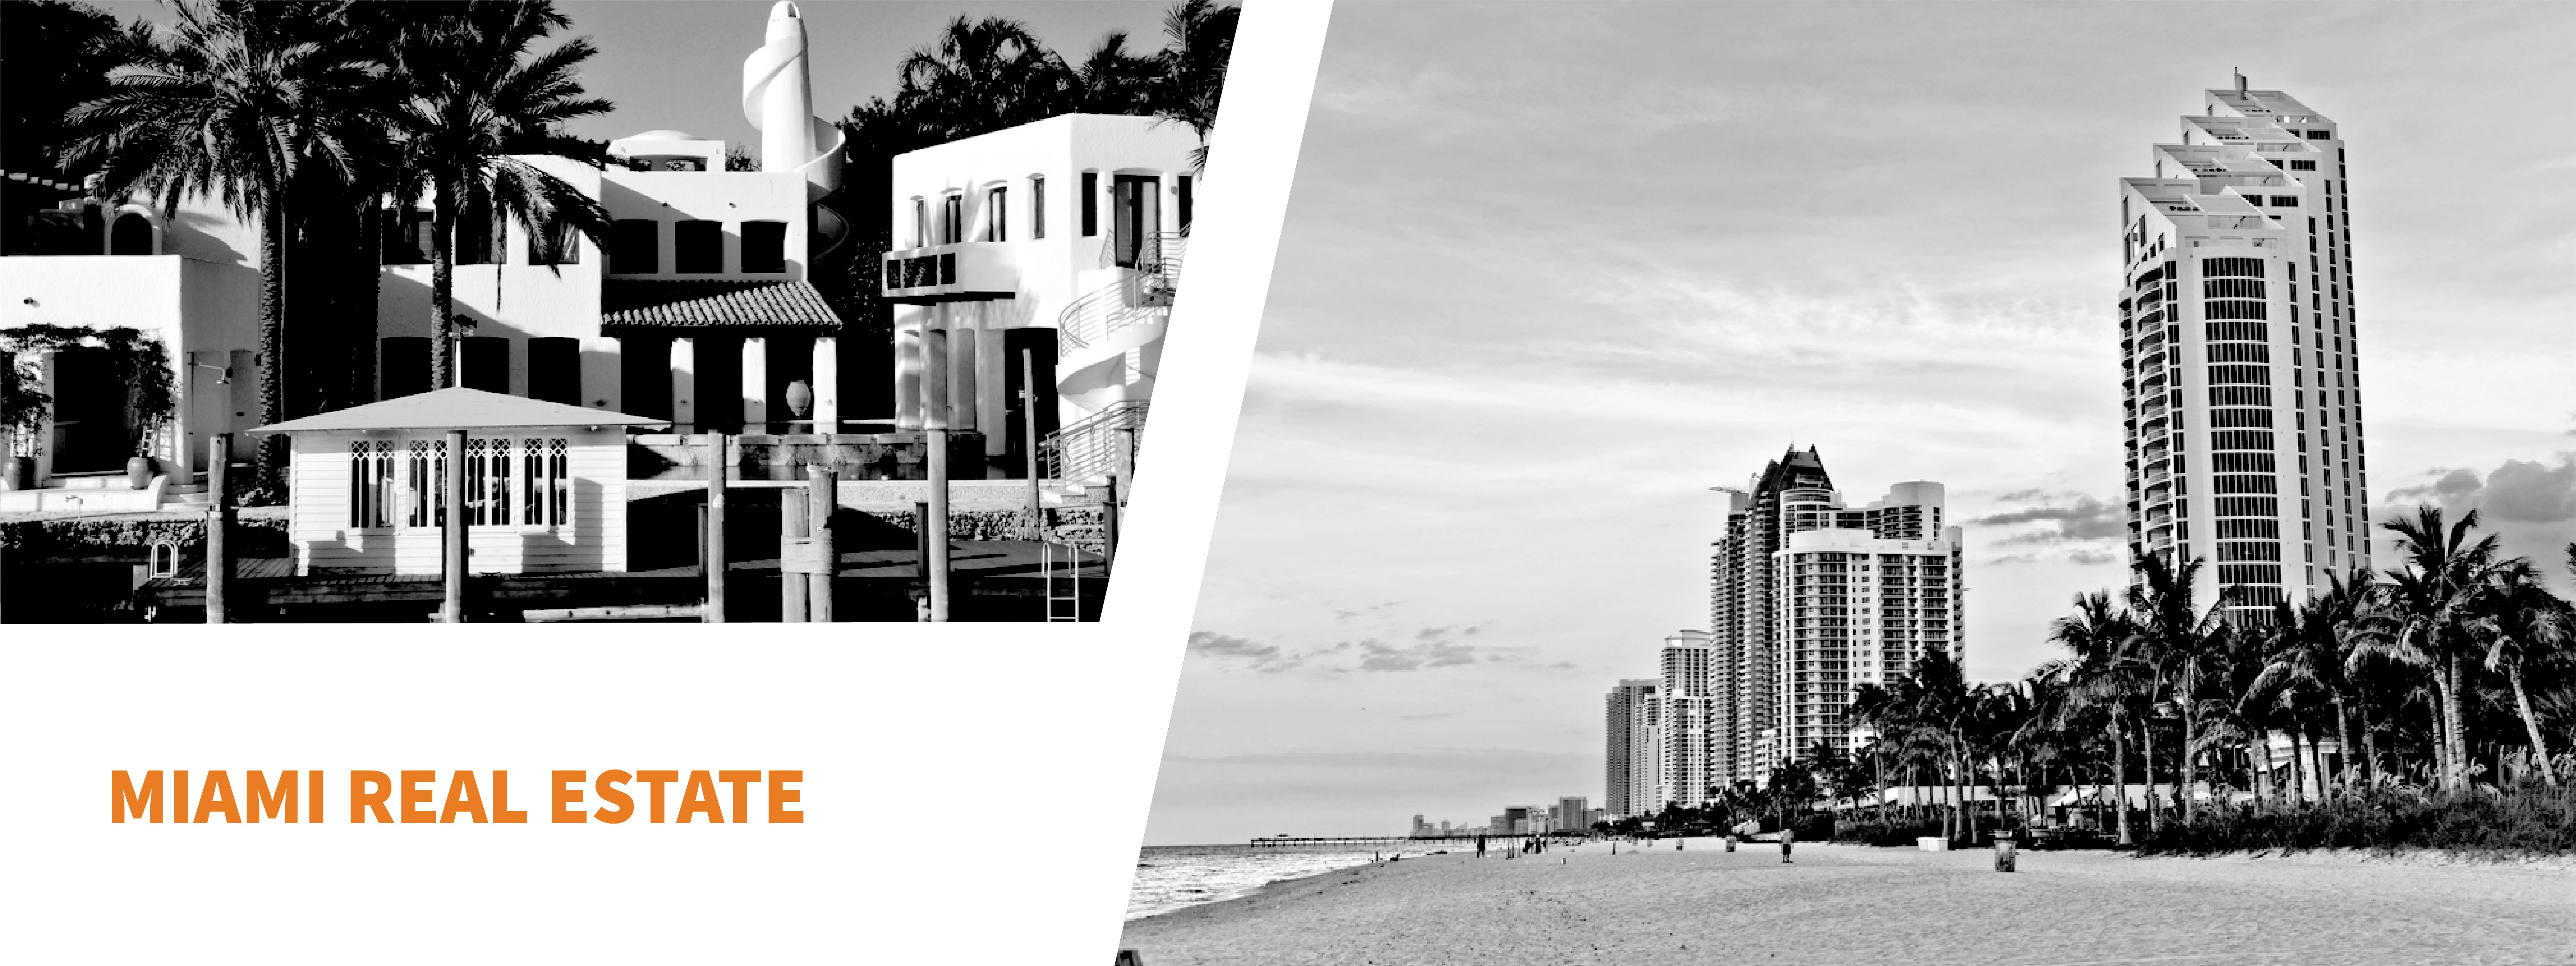 Miami Real Estate: What You Need to Know About Miami's Condo Market